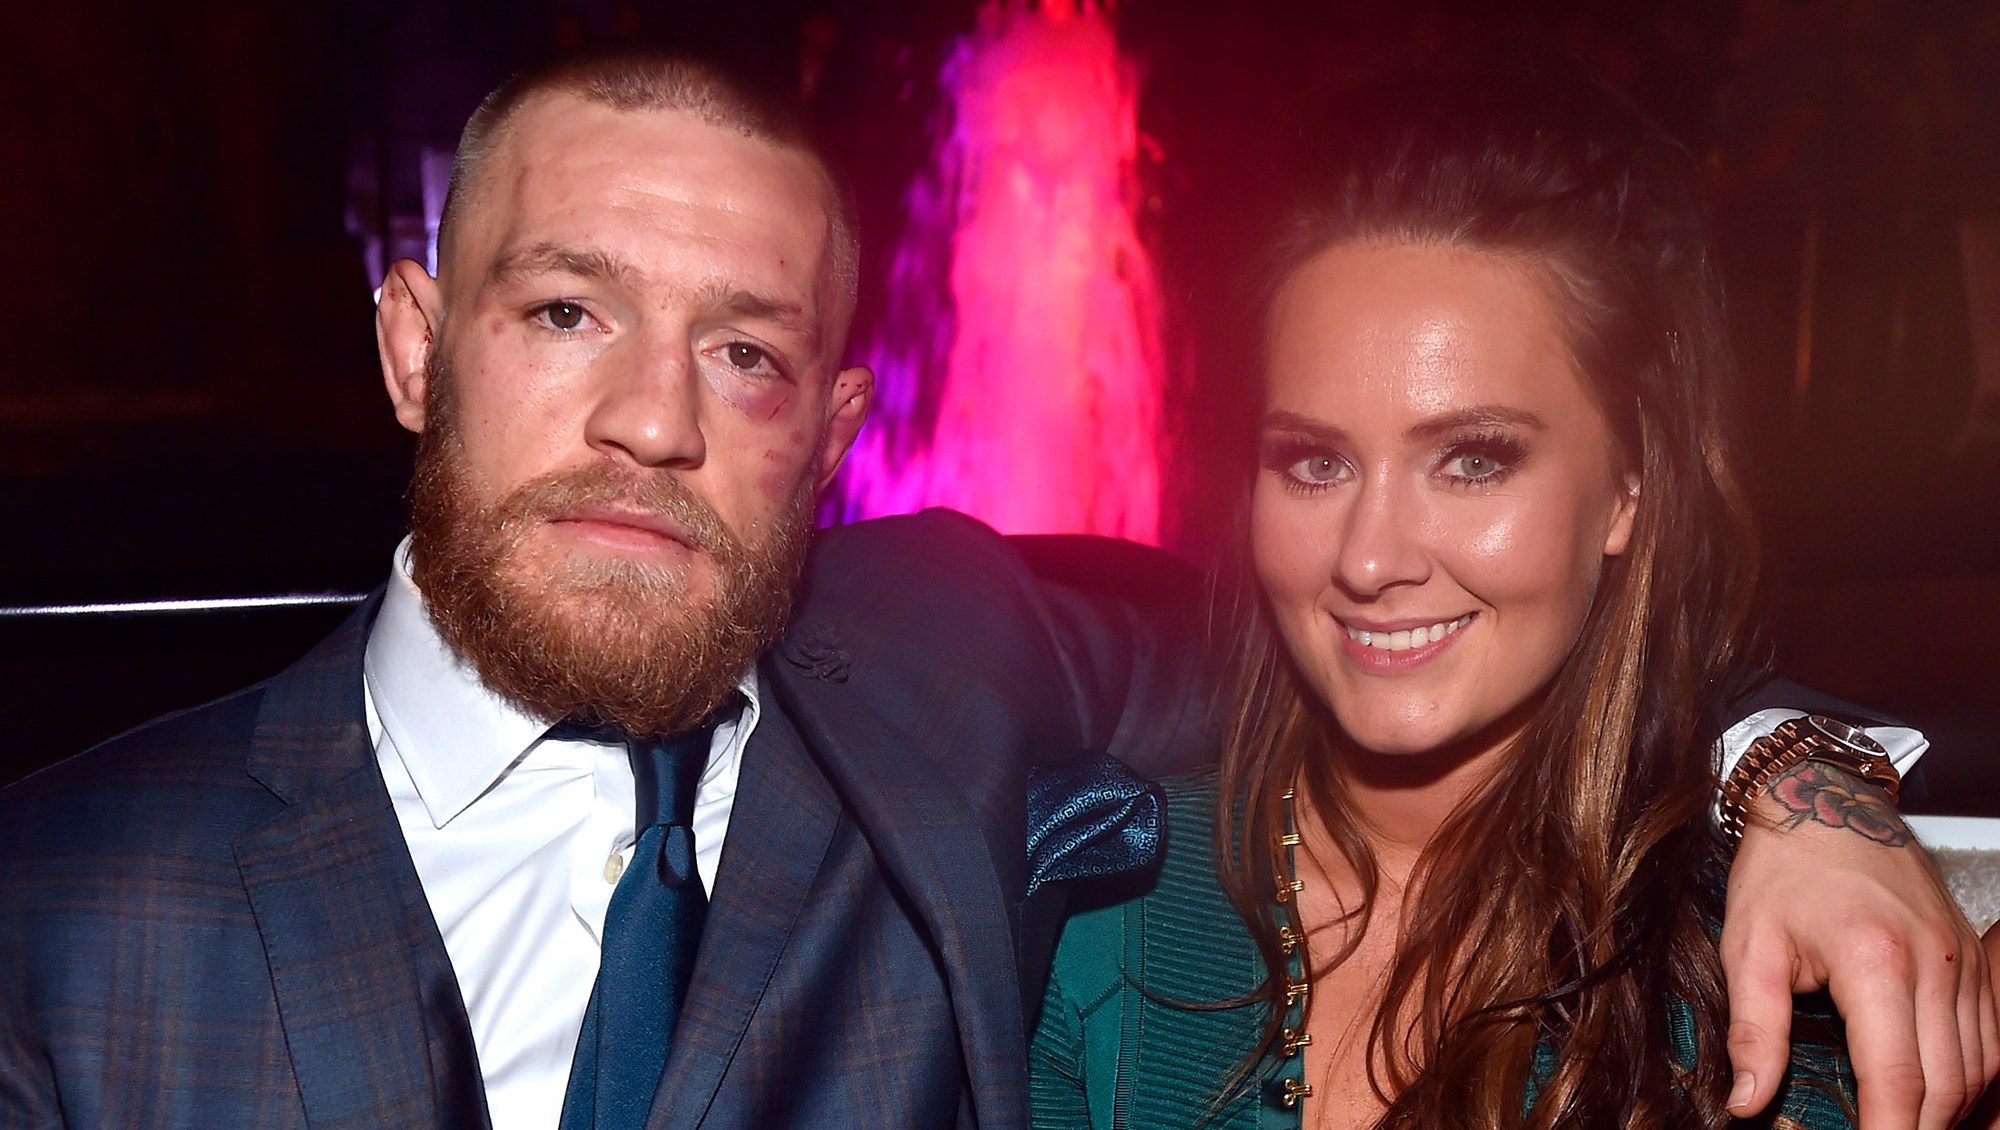 Conor McGregor and Dee Devlin